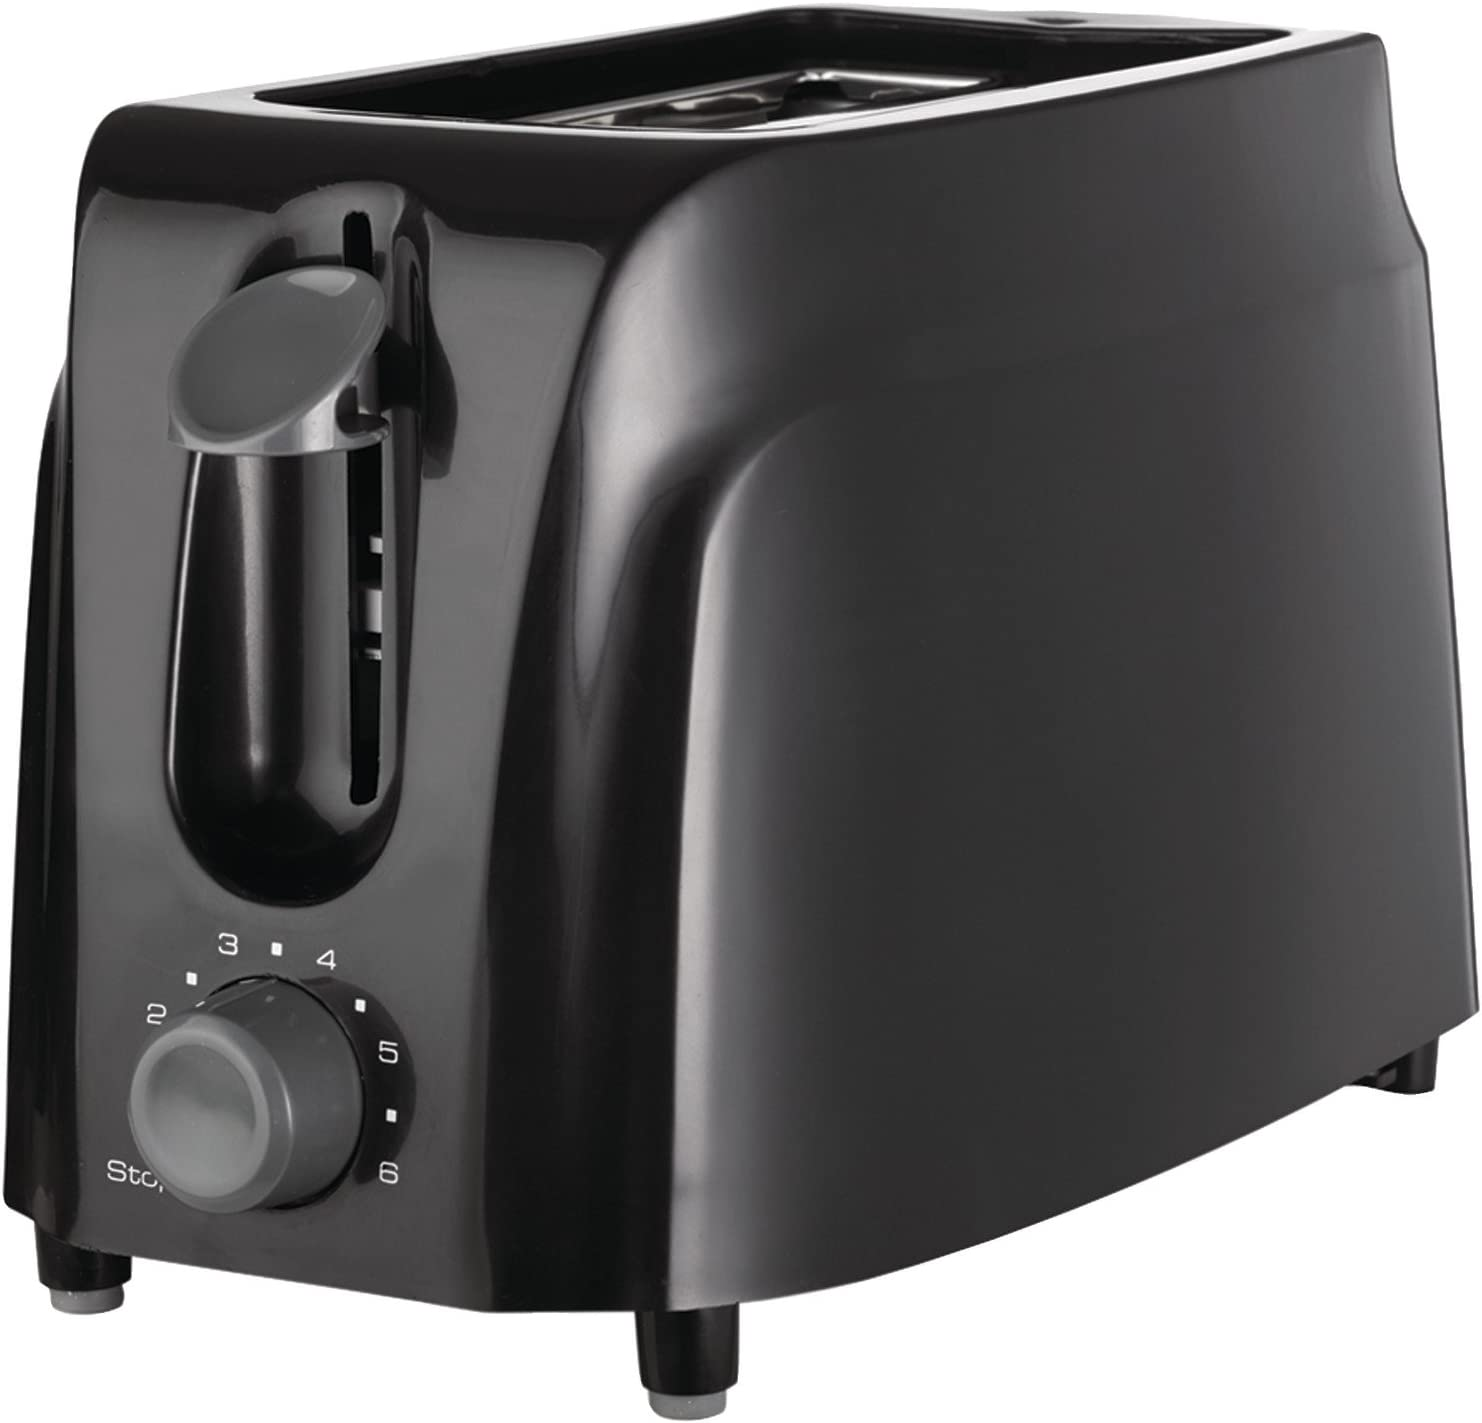 Brentwood Cool Touch 2-Slice Toaster Kitchen Supplies, Black